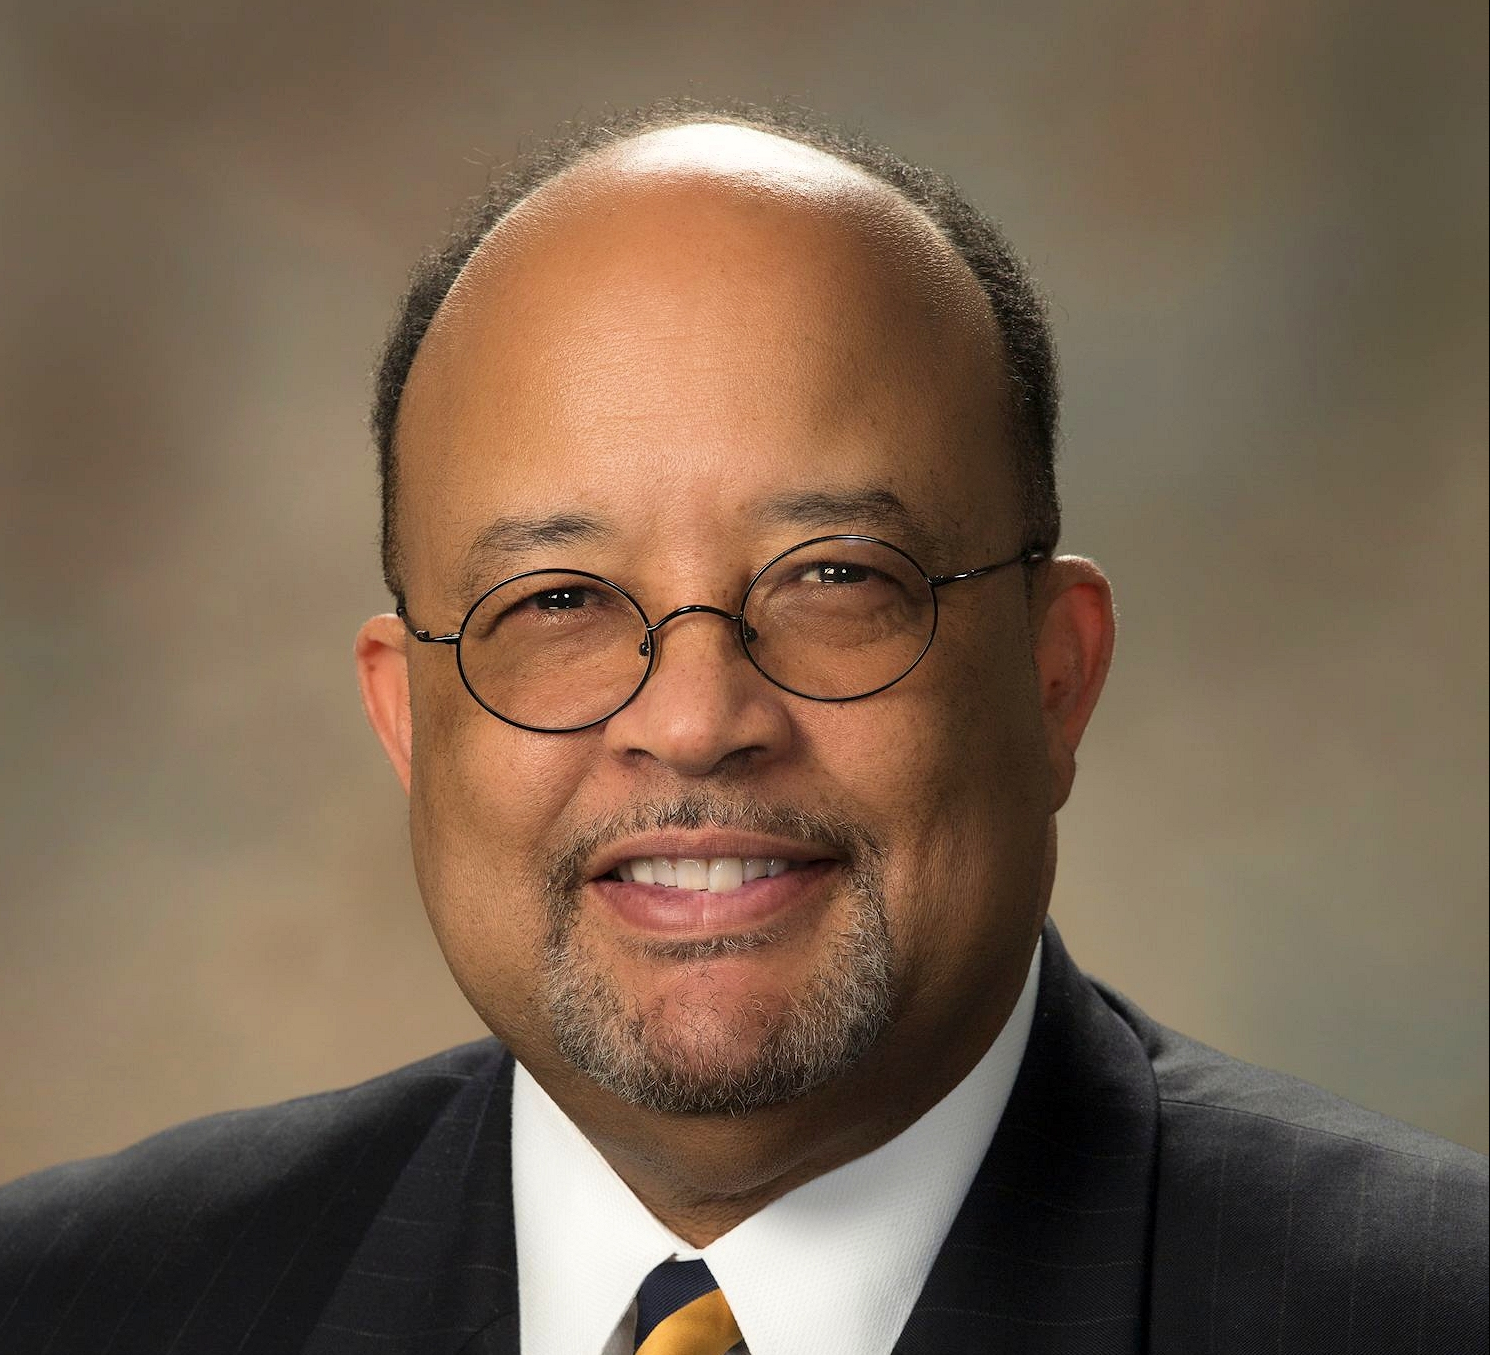 Dr. Walker Reflects On Time, Successes At WCC